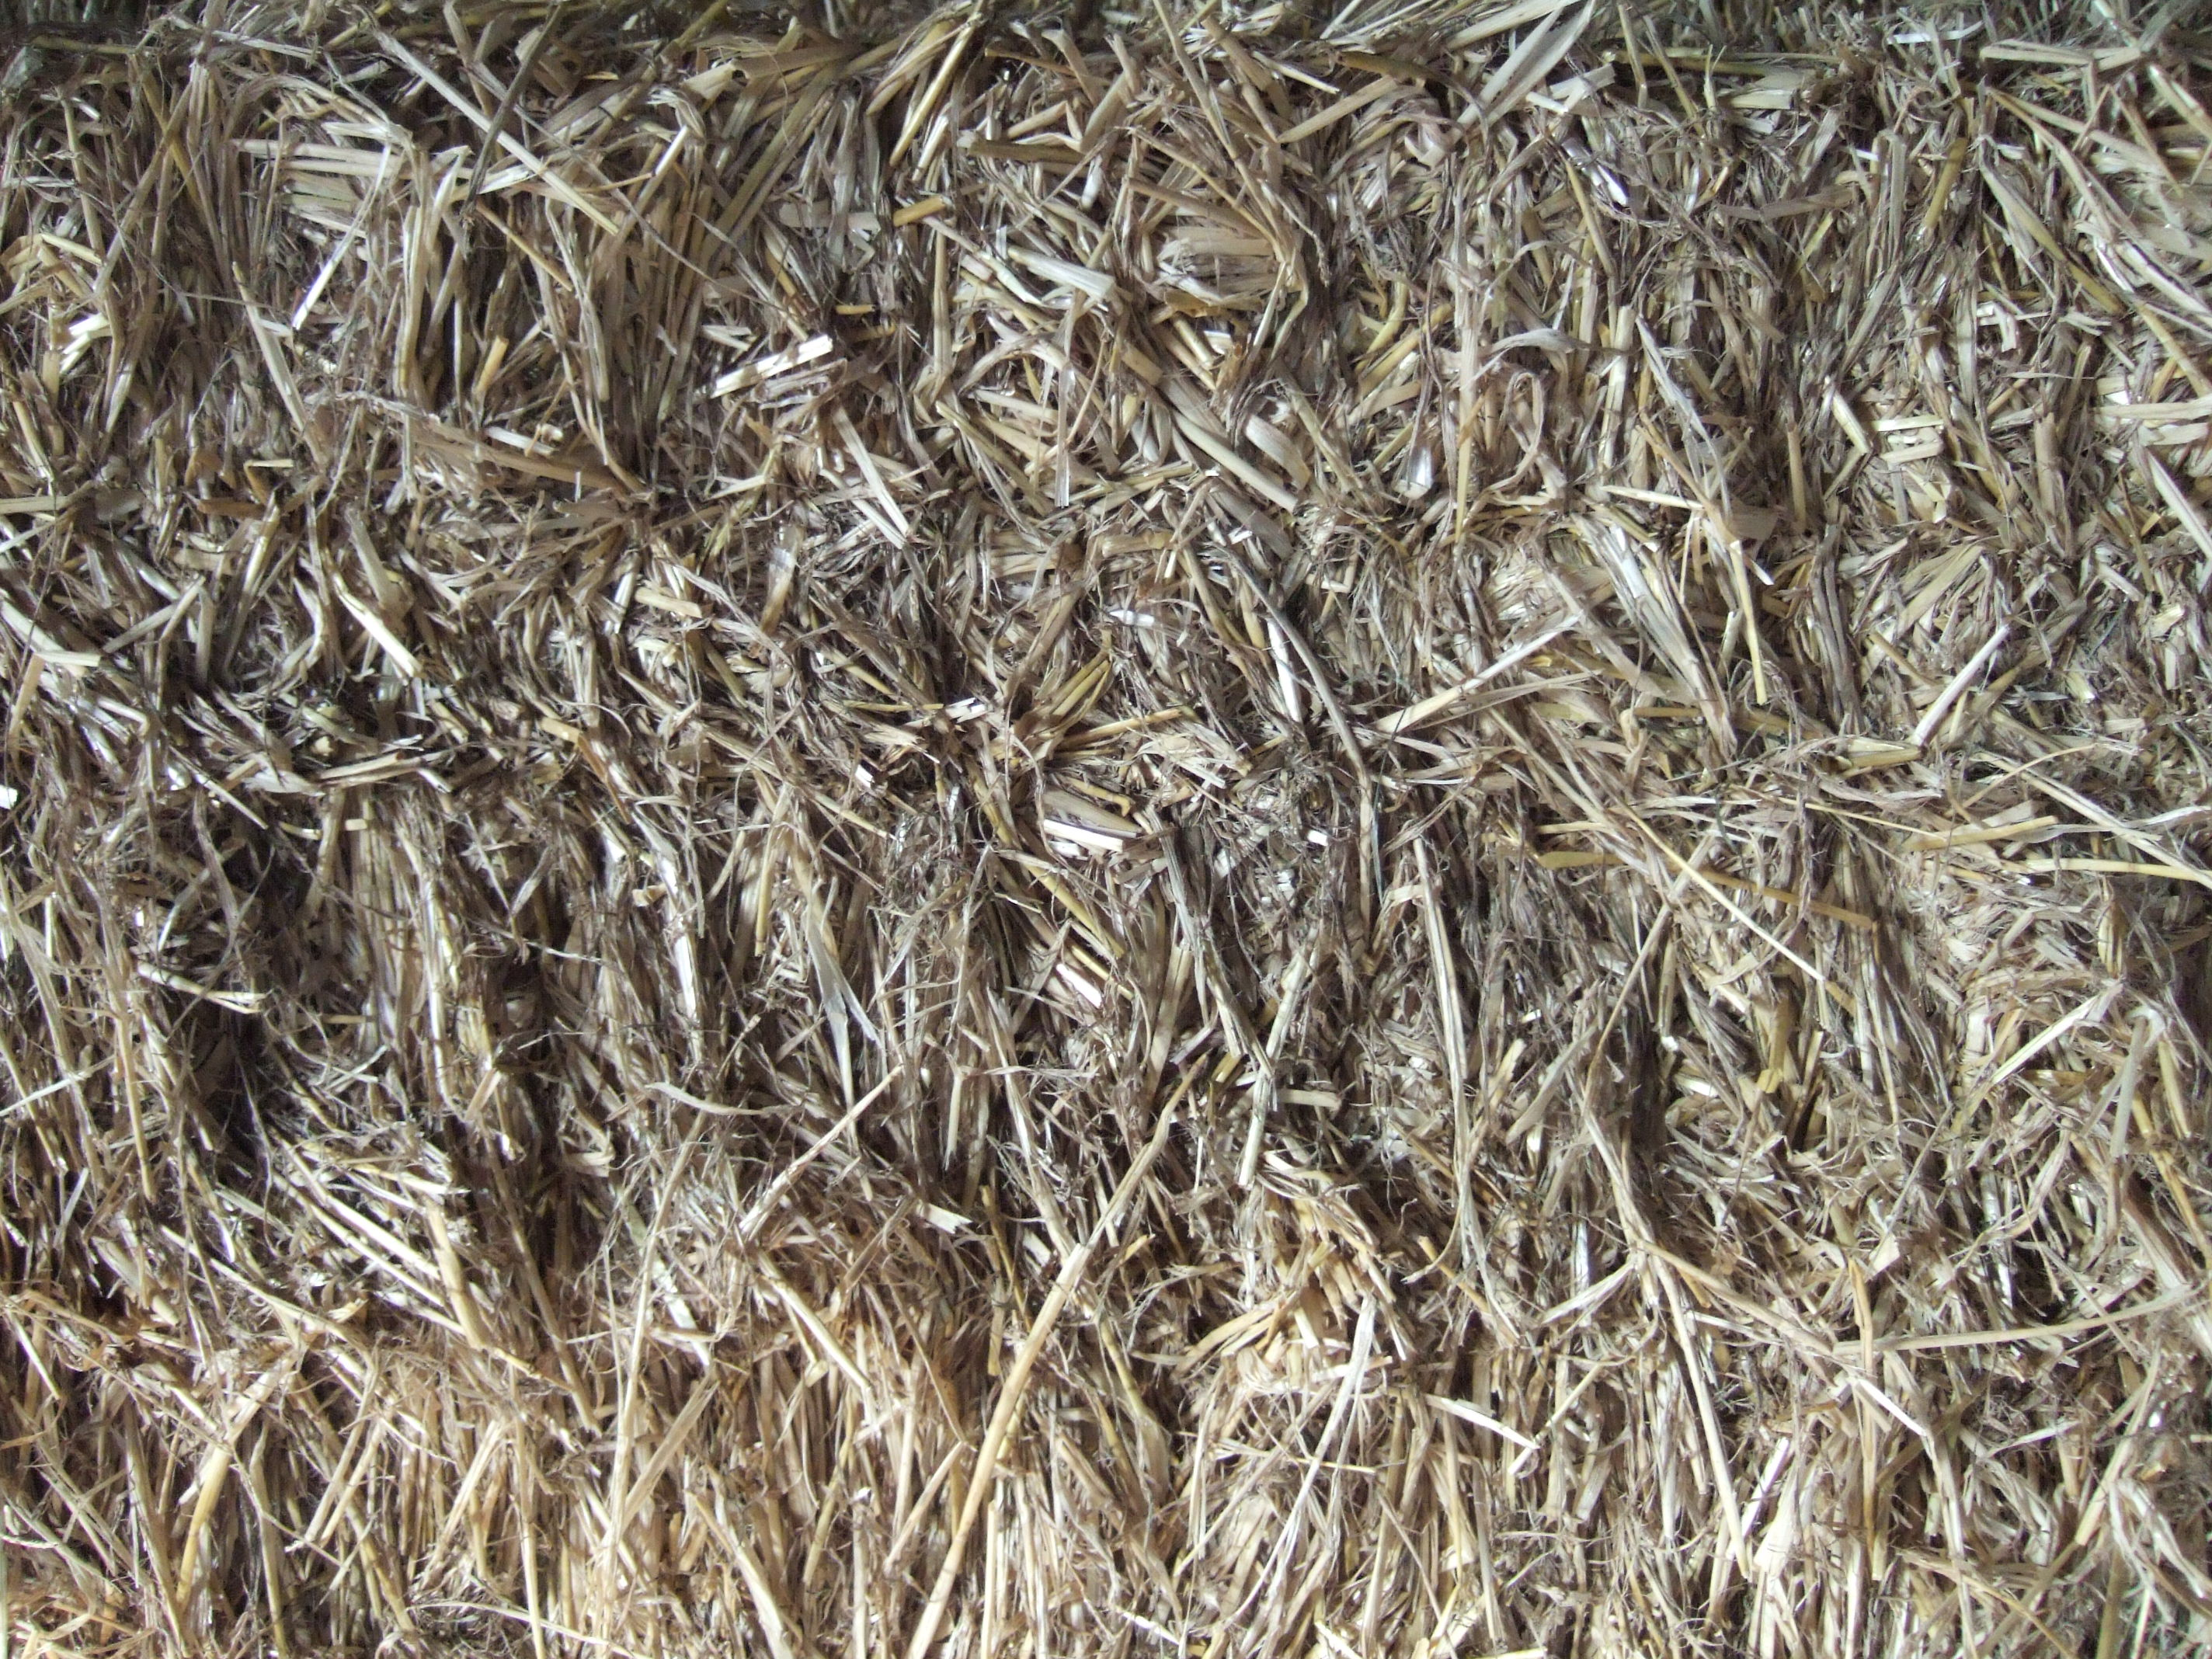 tabus hay straw dry grass cattle feed